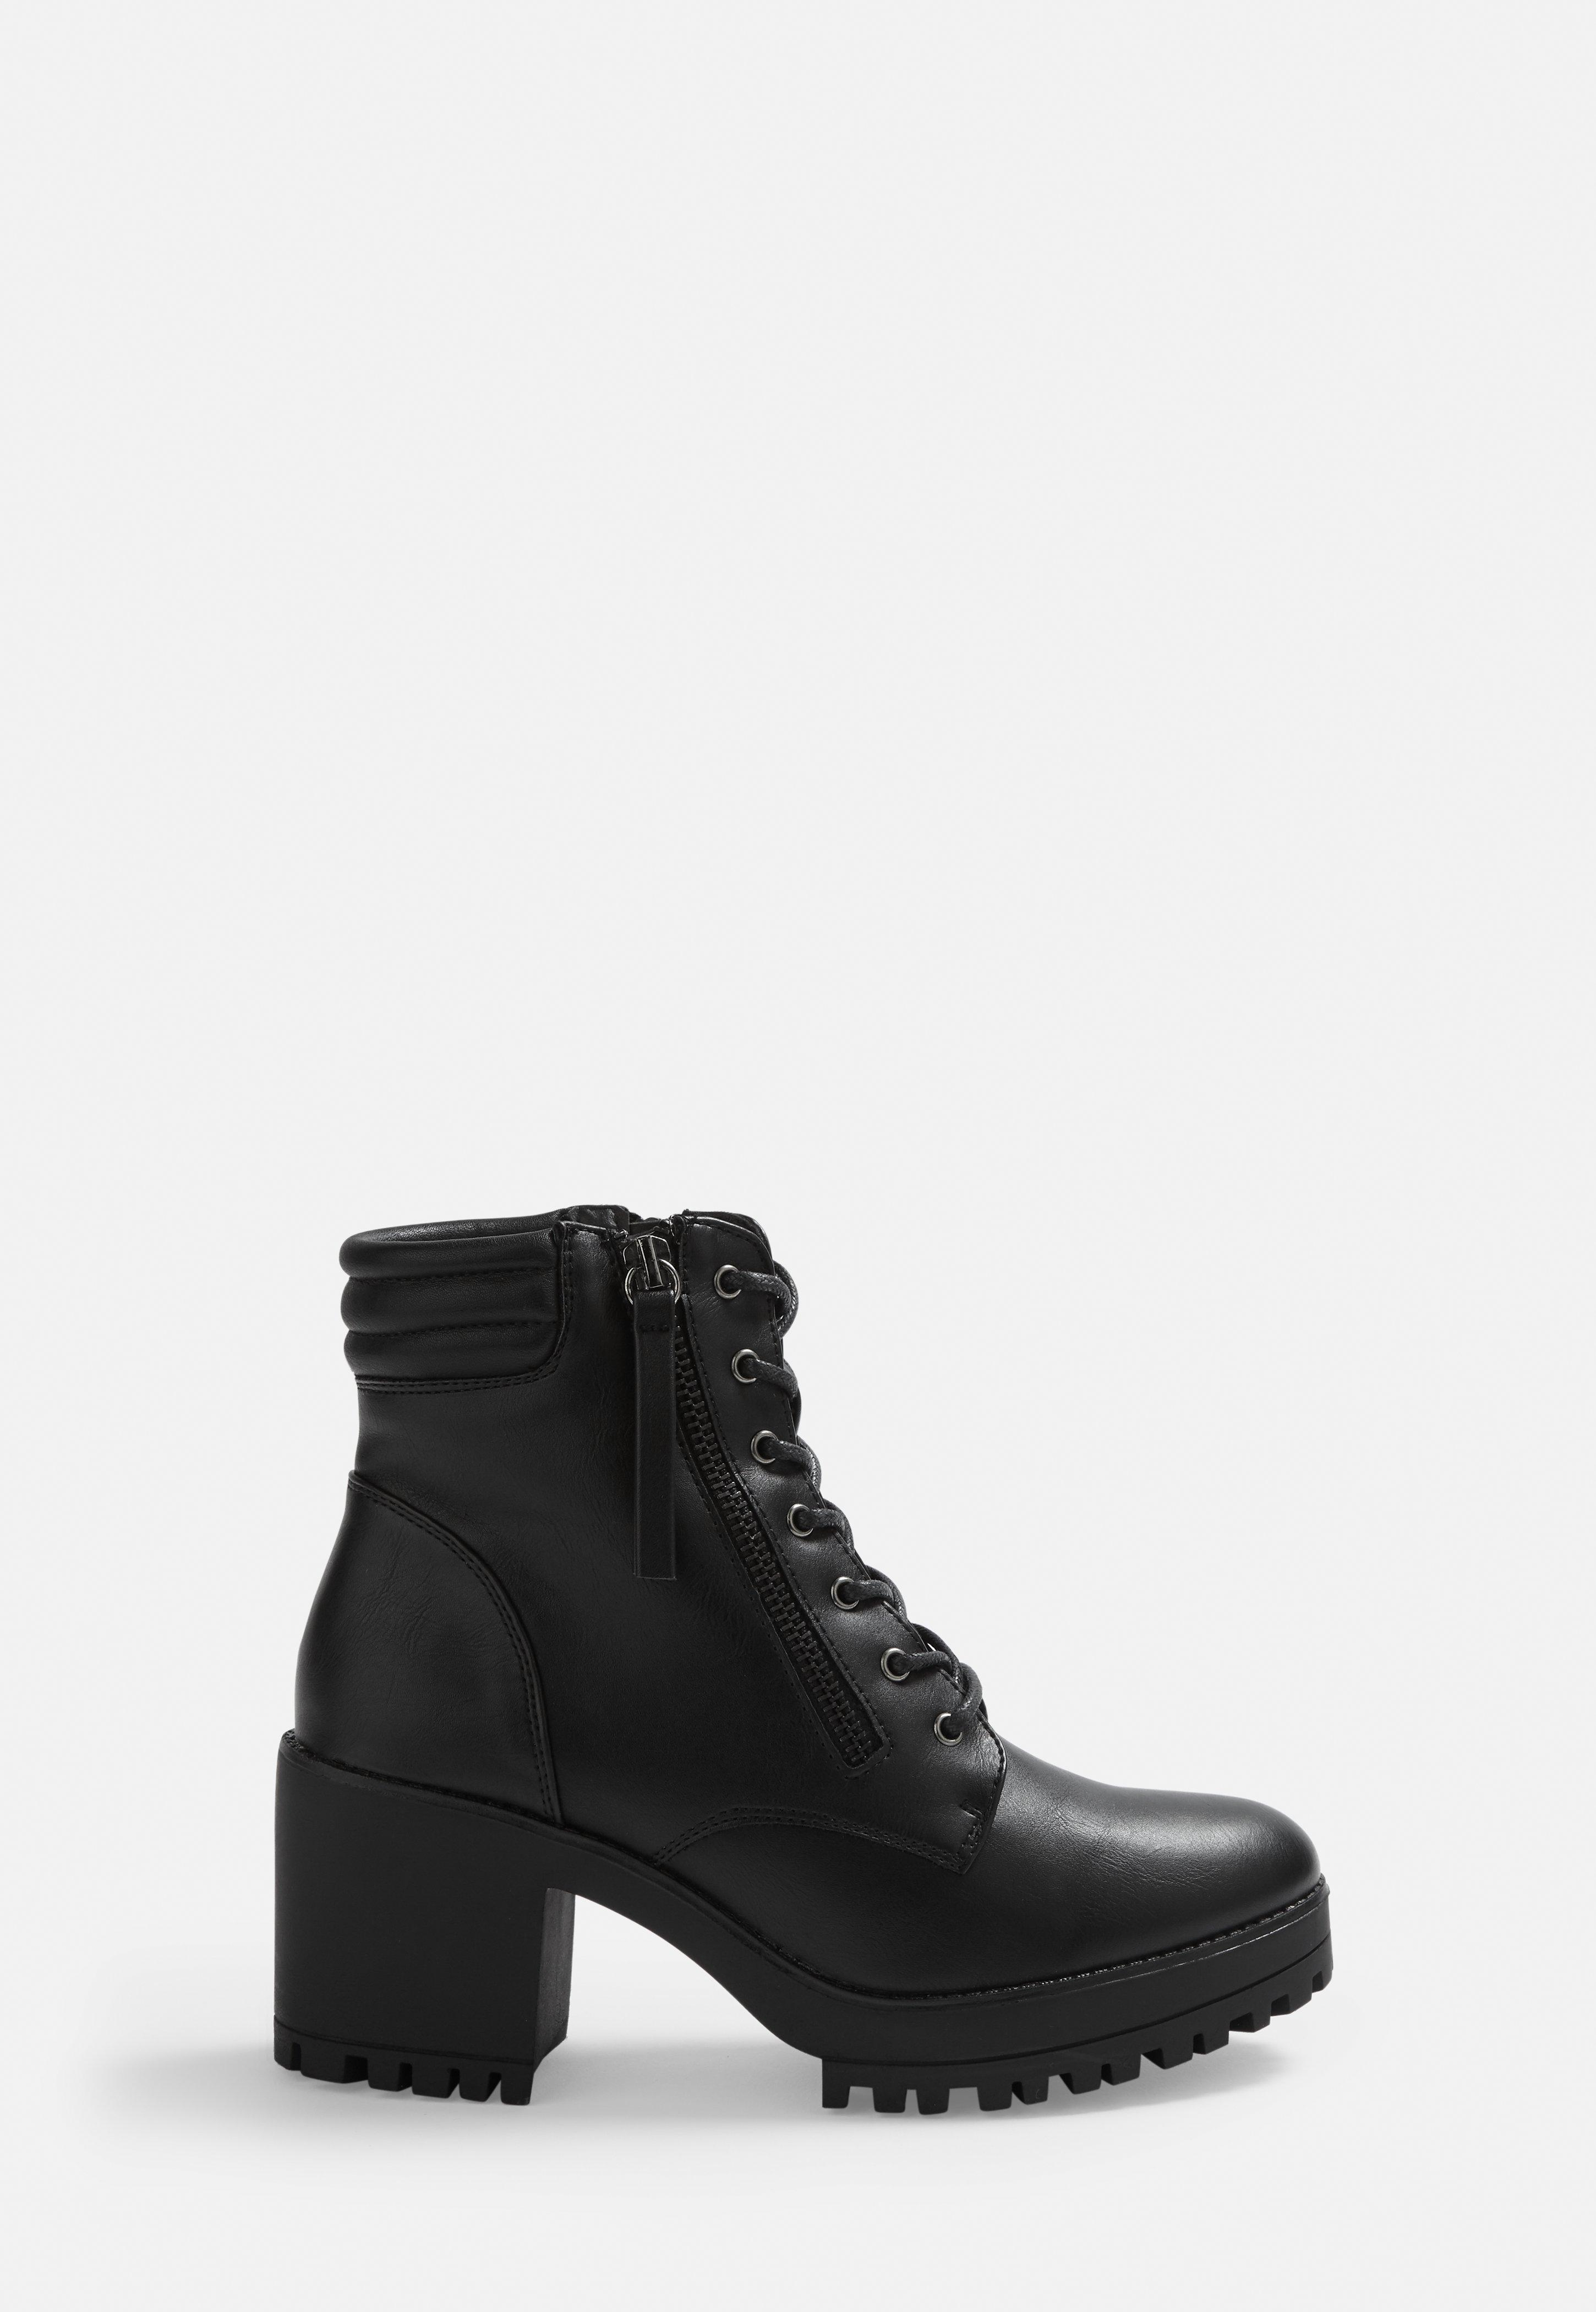 4534ee97a6d Women's Boots | Ankle Boots | Black Boots | Missguided